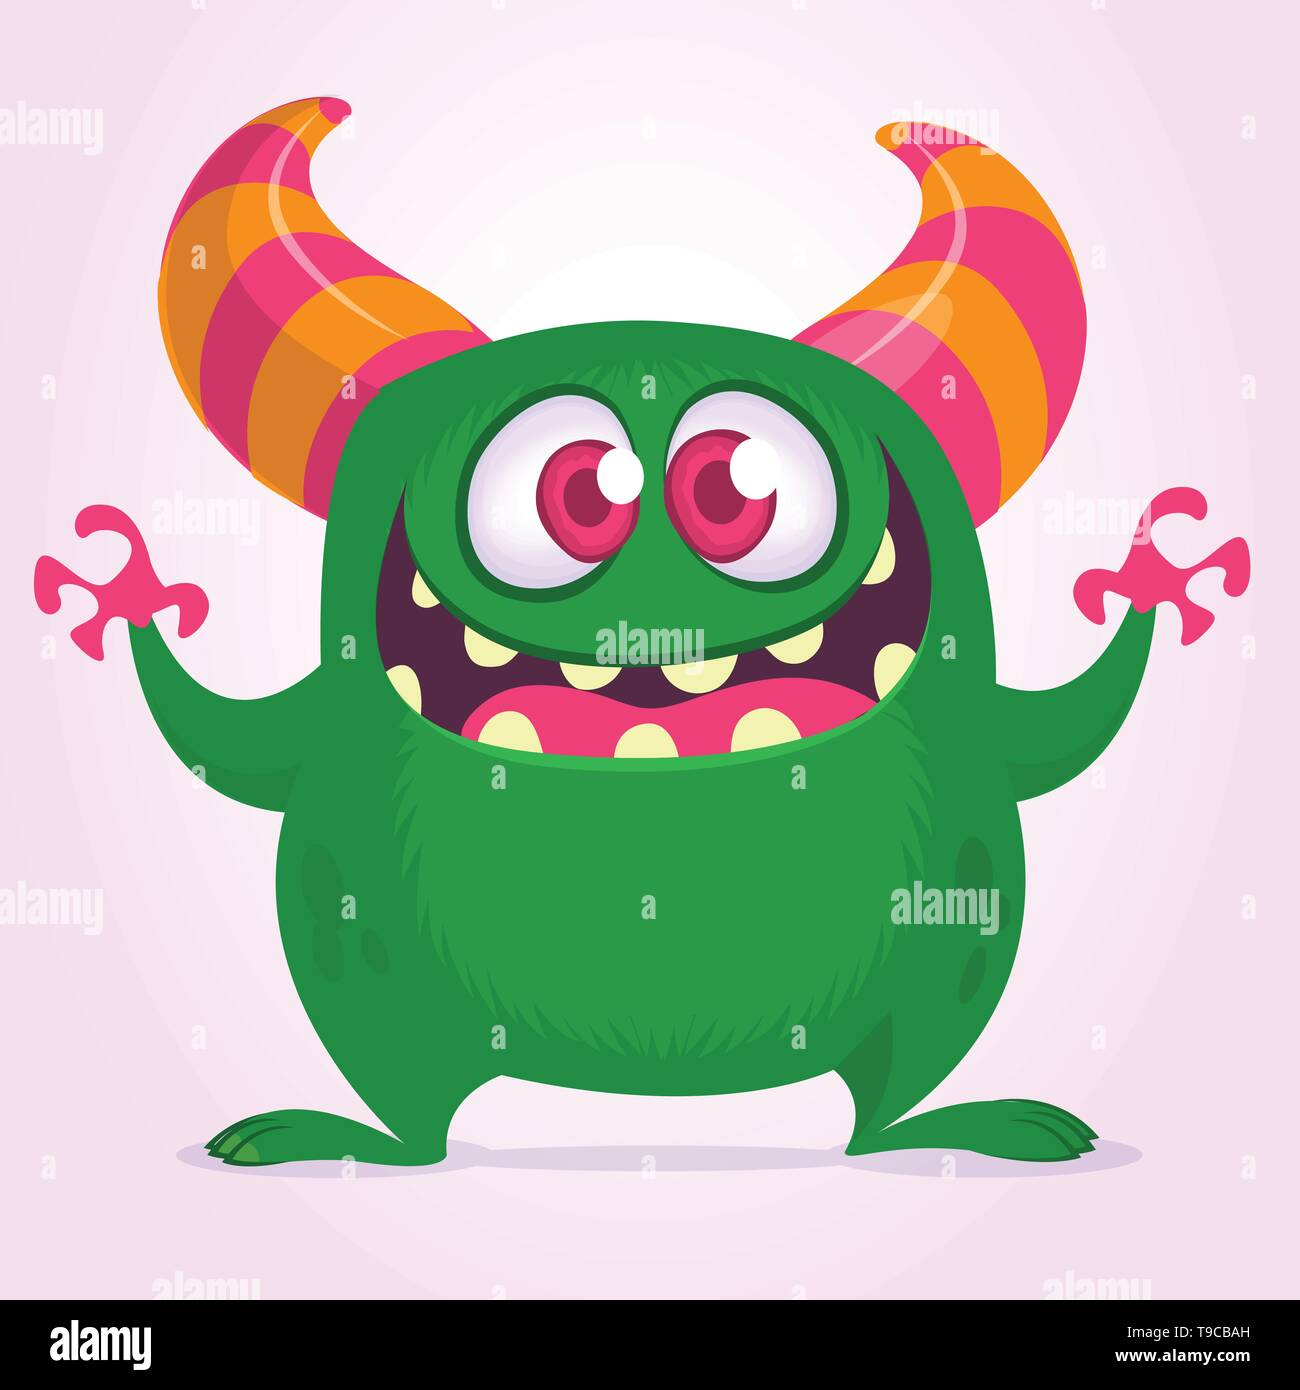 Funny cartoon monster waving hands excited. Vector green monster illustration. Halloween design - Stock Image